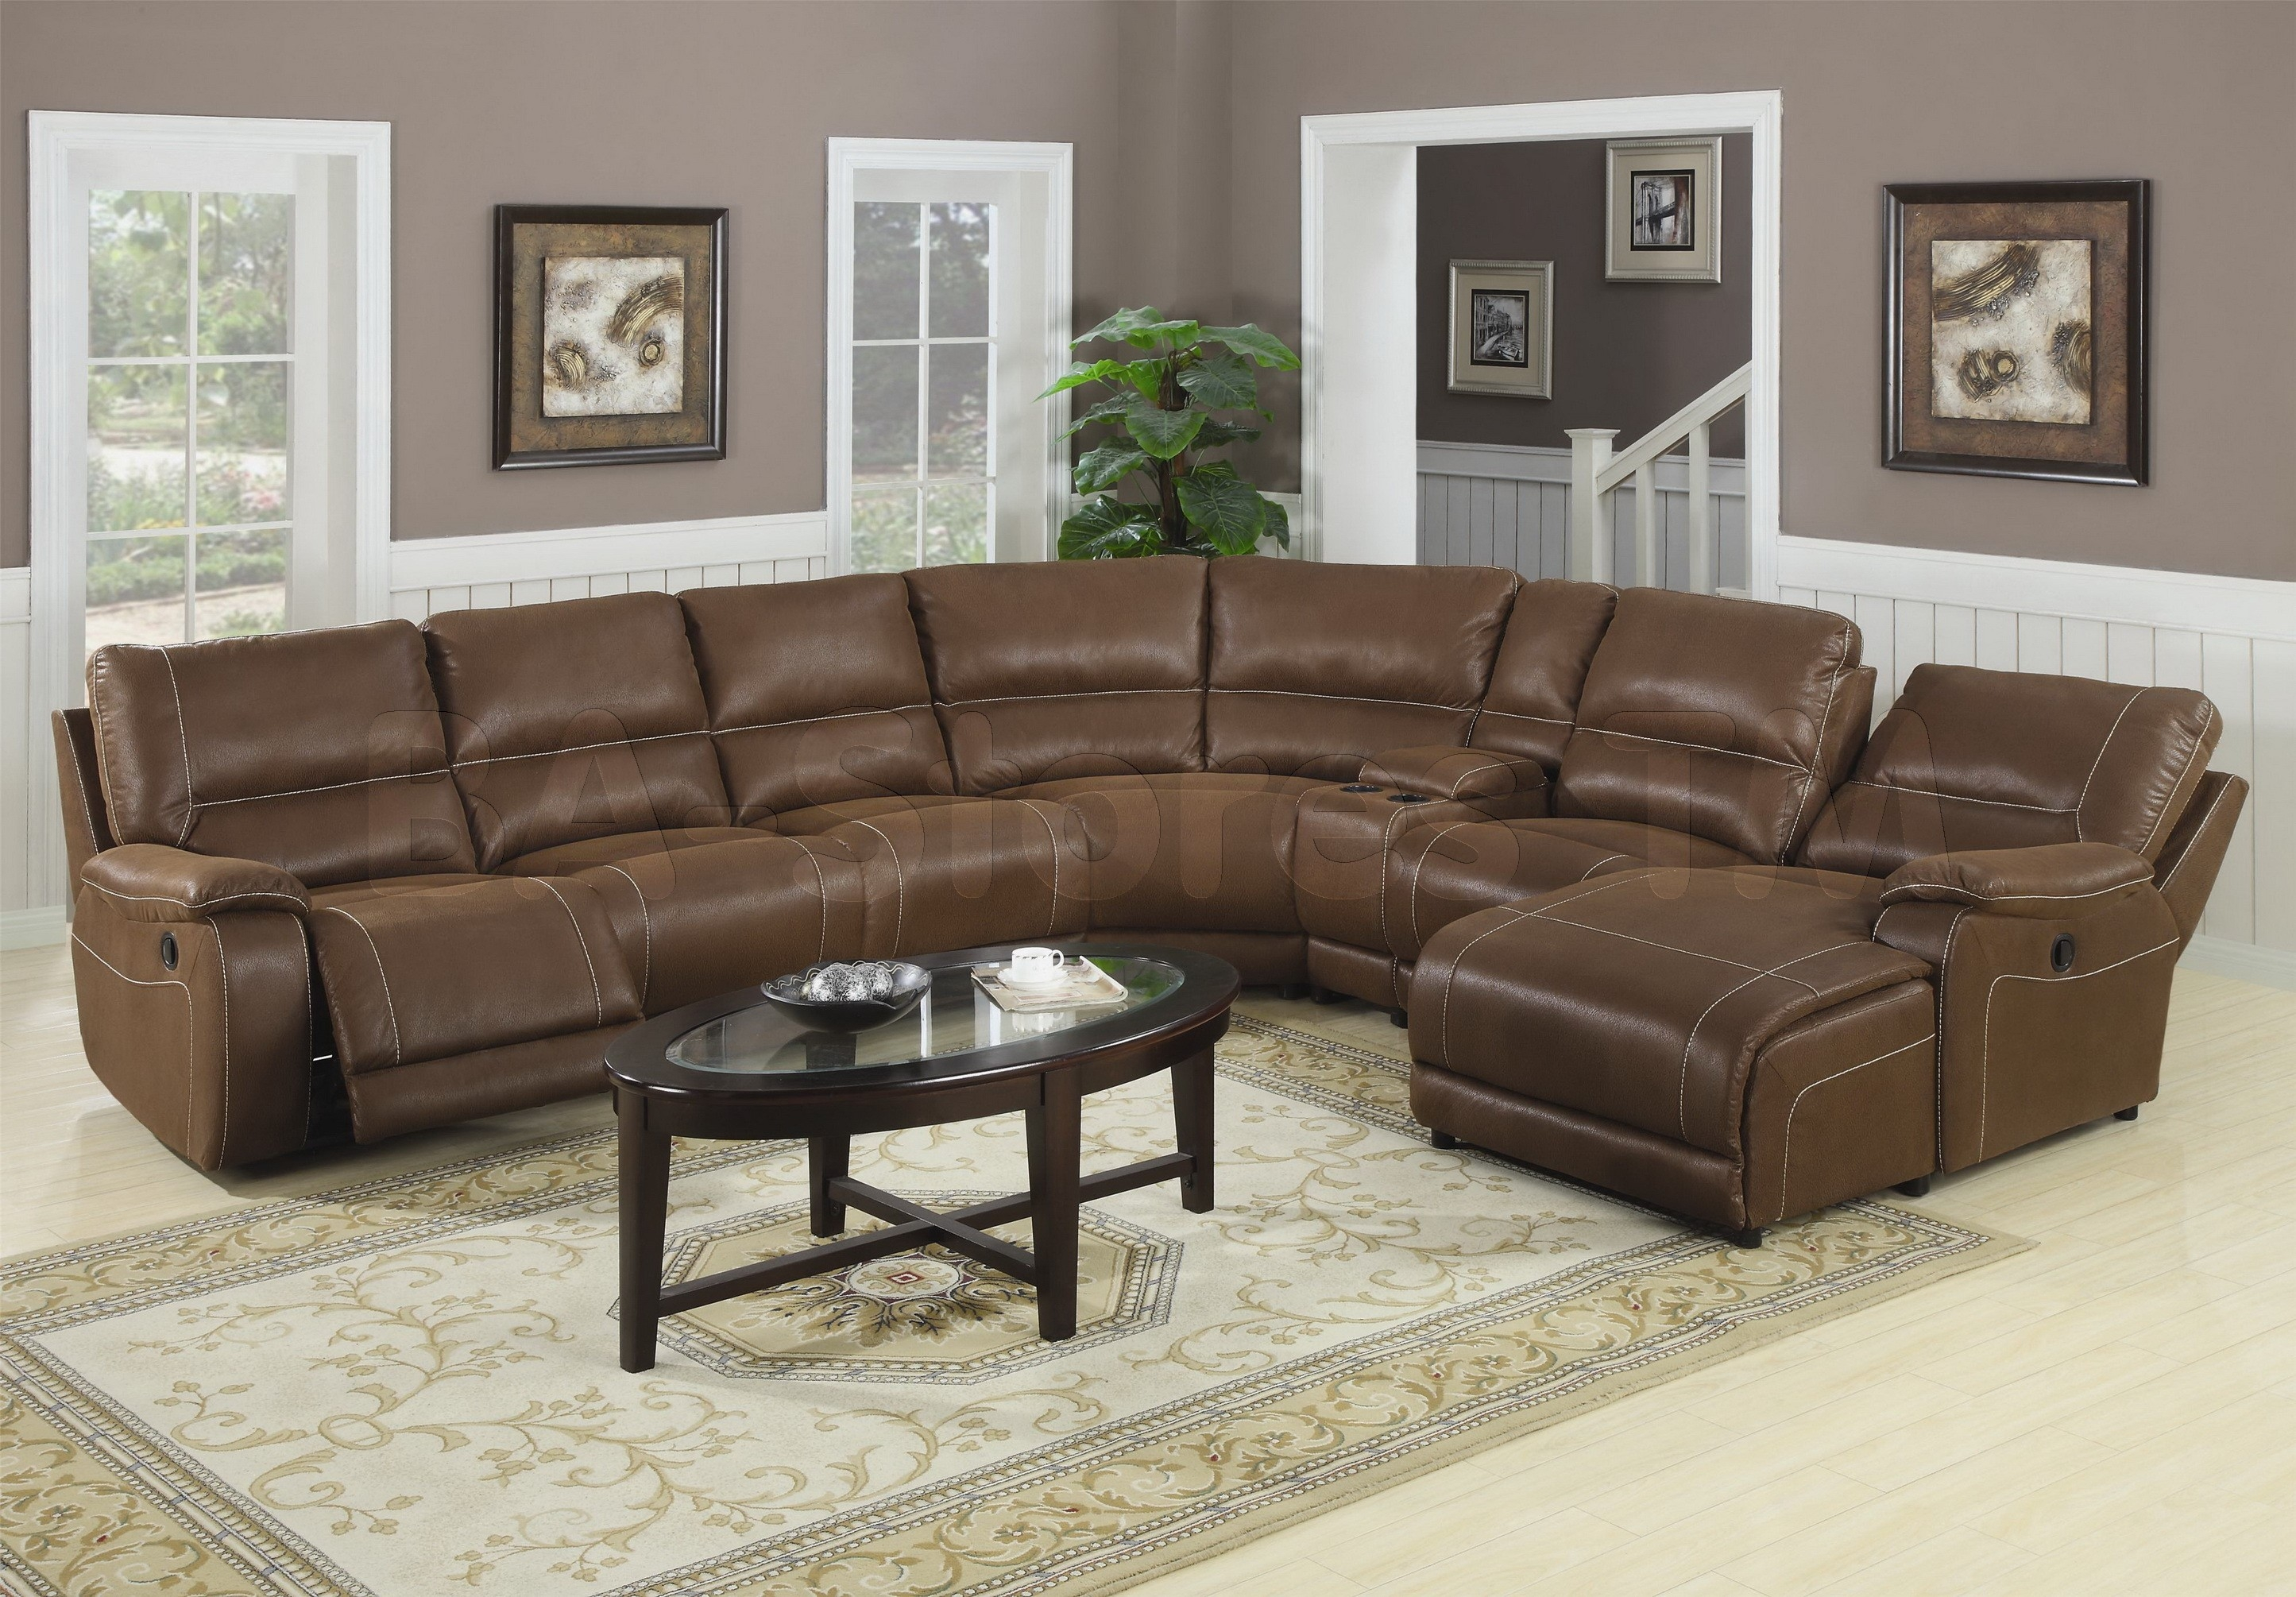 Wide Sofas All Information Sofa Desain Ideas Within Extra Wide Sectional Sofas (View 5 of 12)